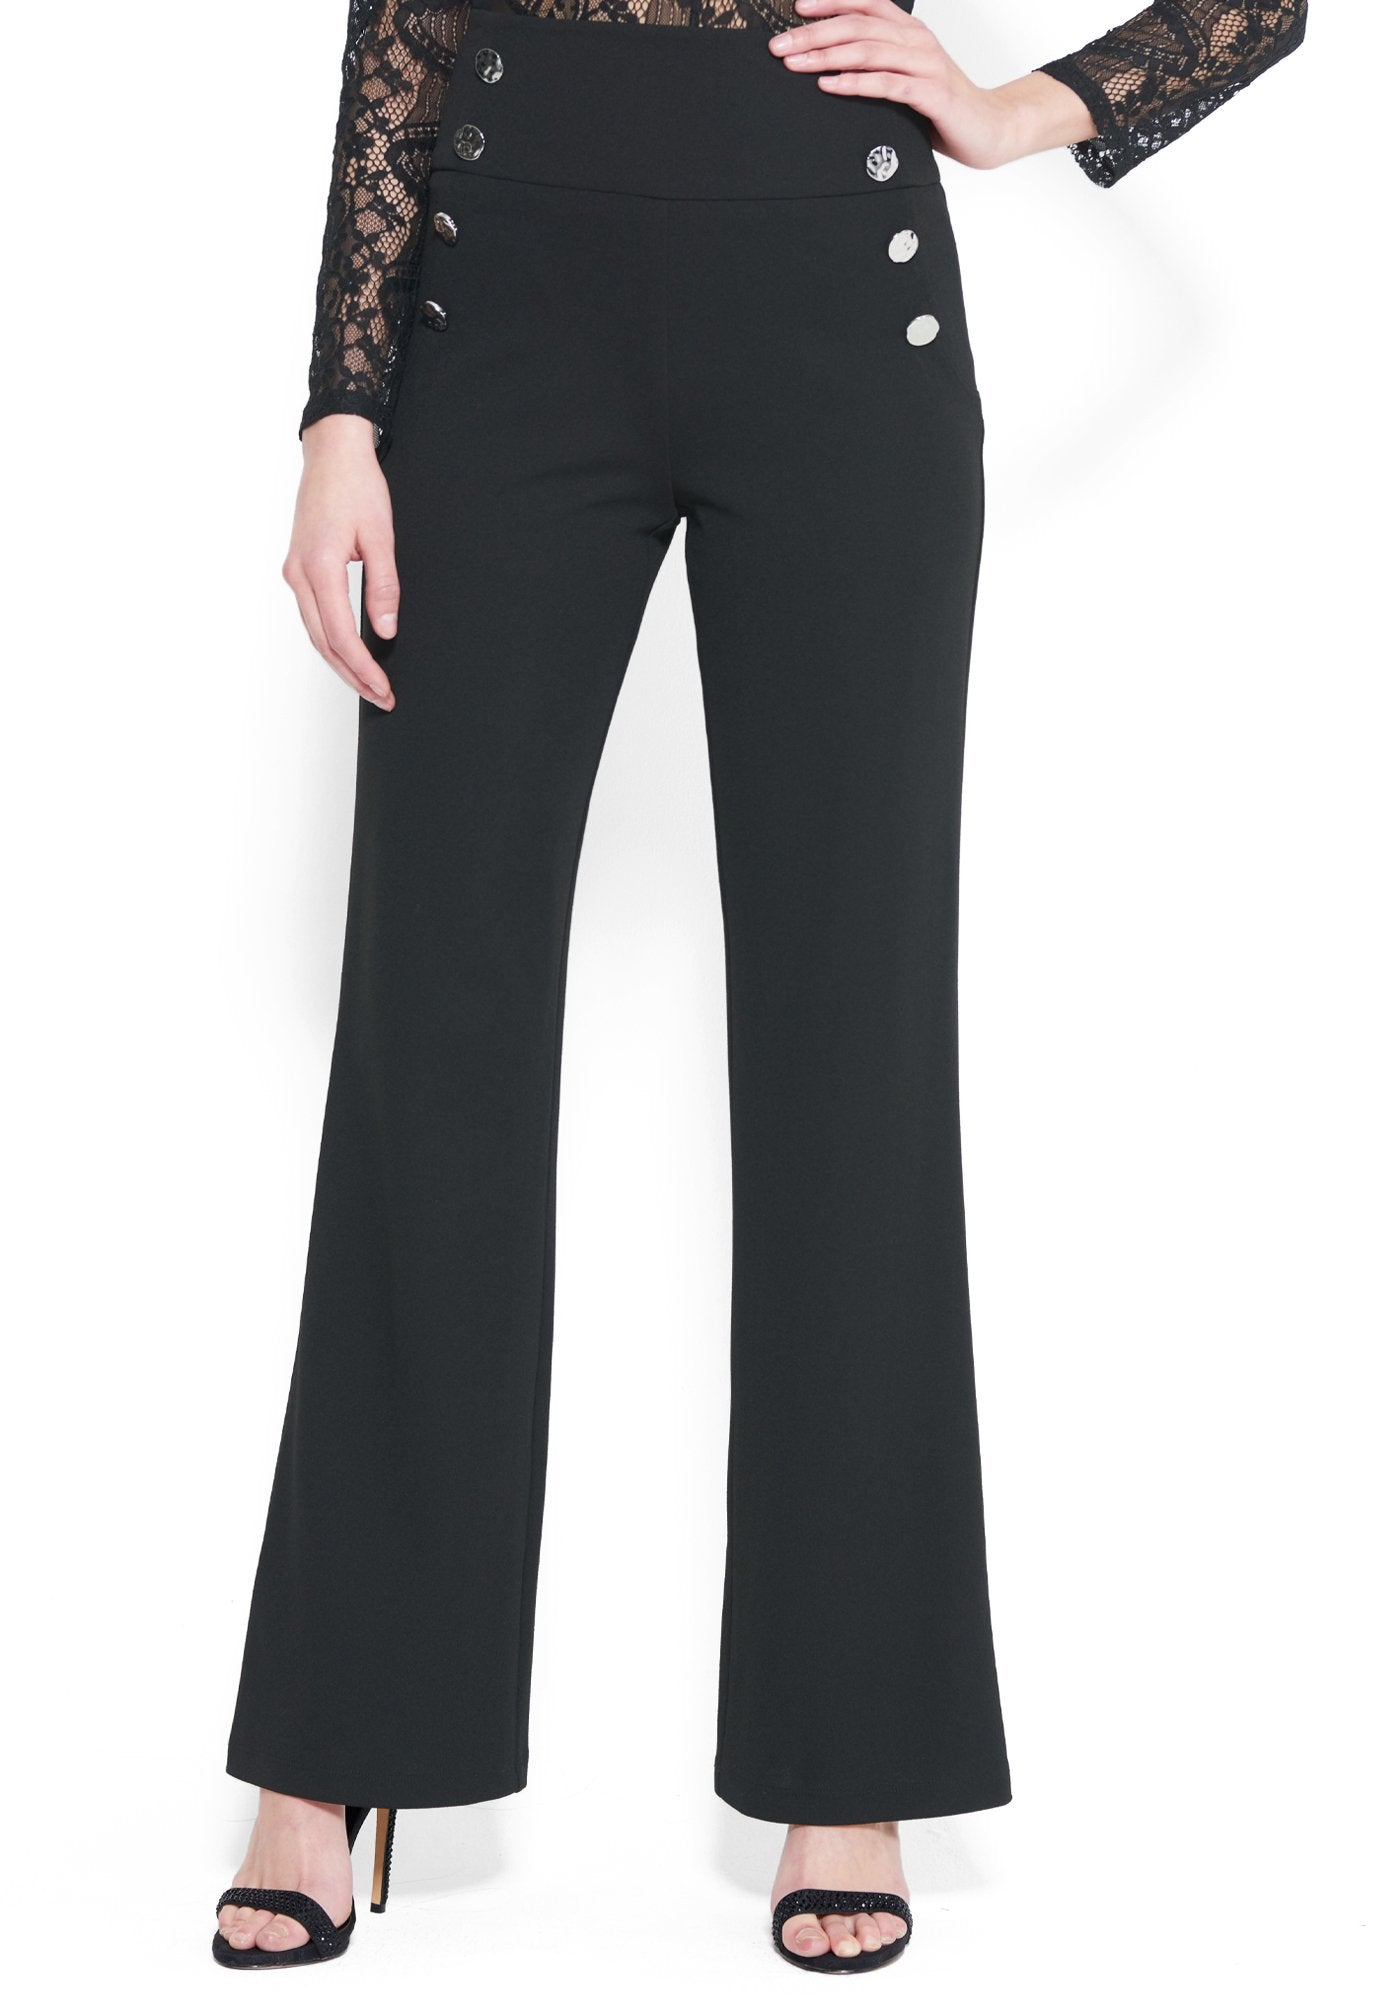 Bebe Women's High Waist Wide Leg Button Pant, Size 00 in BLACK Polyester